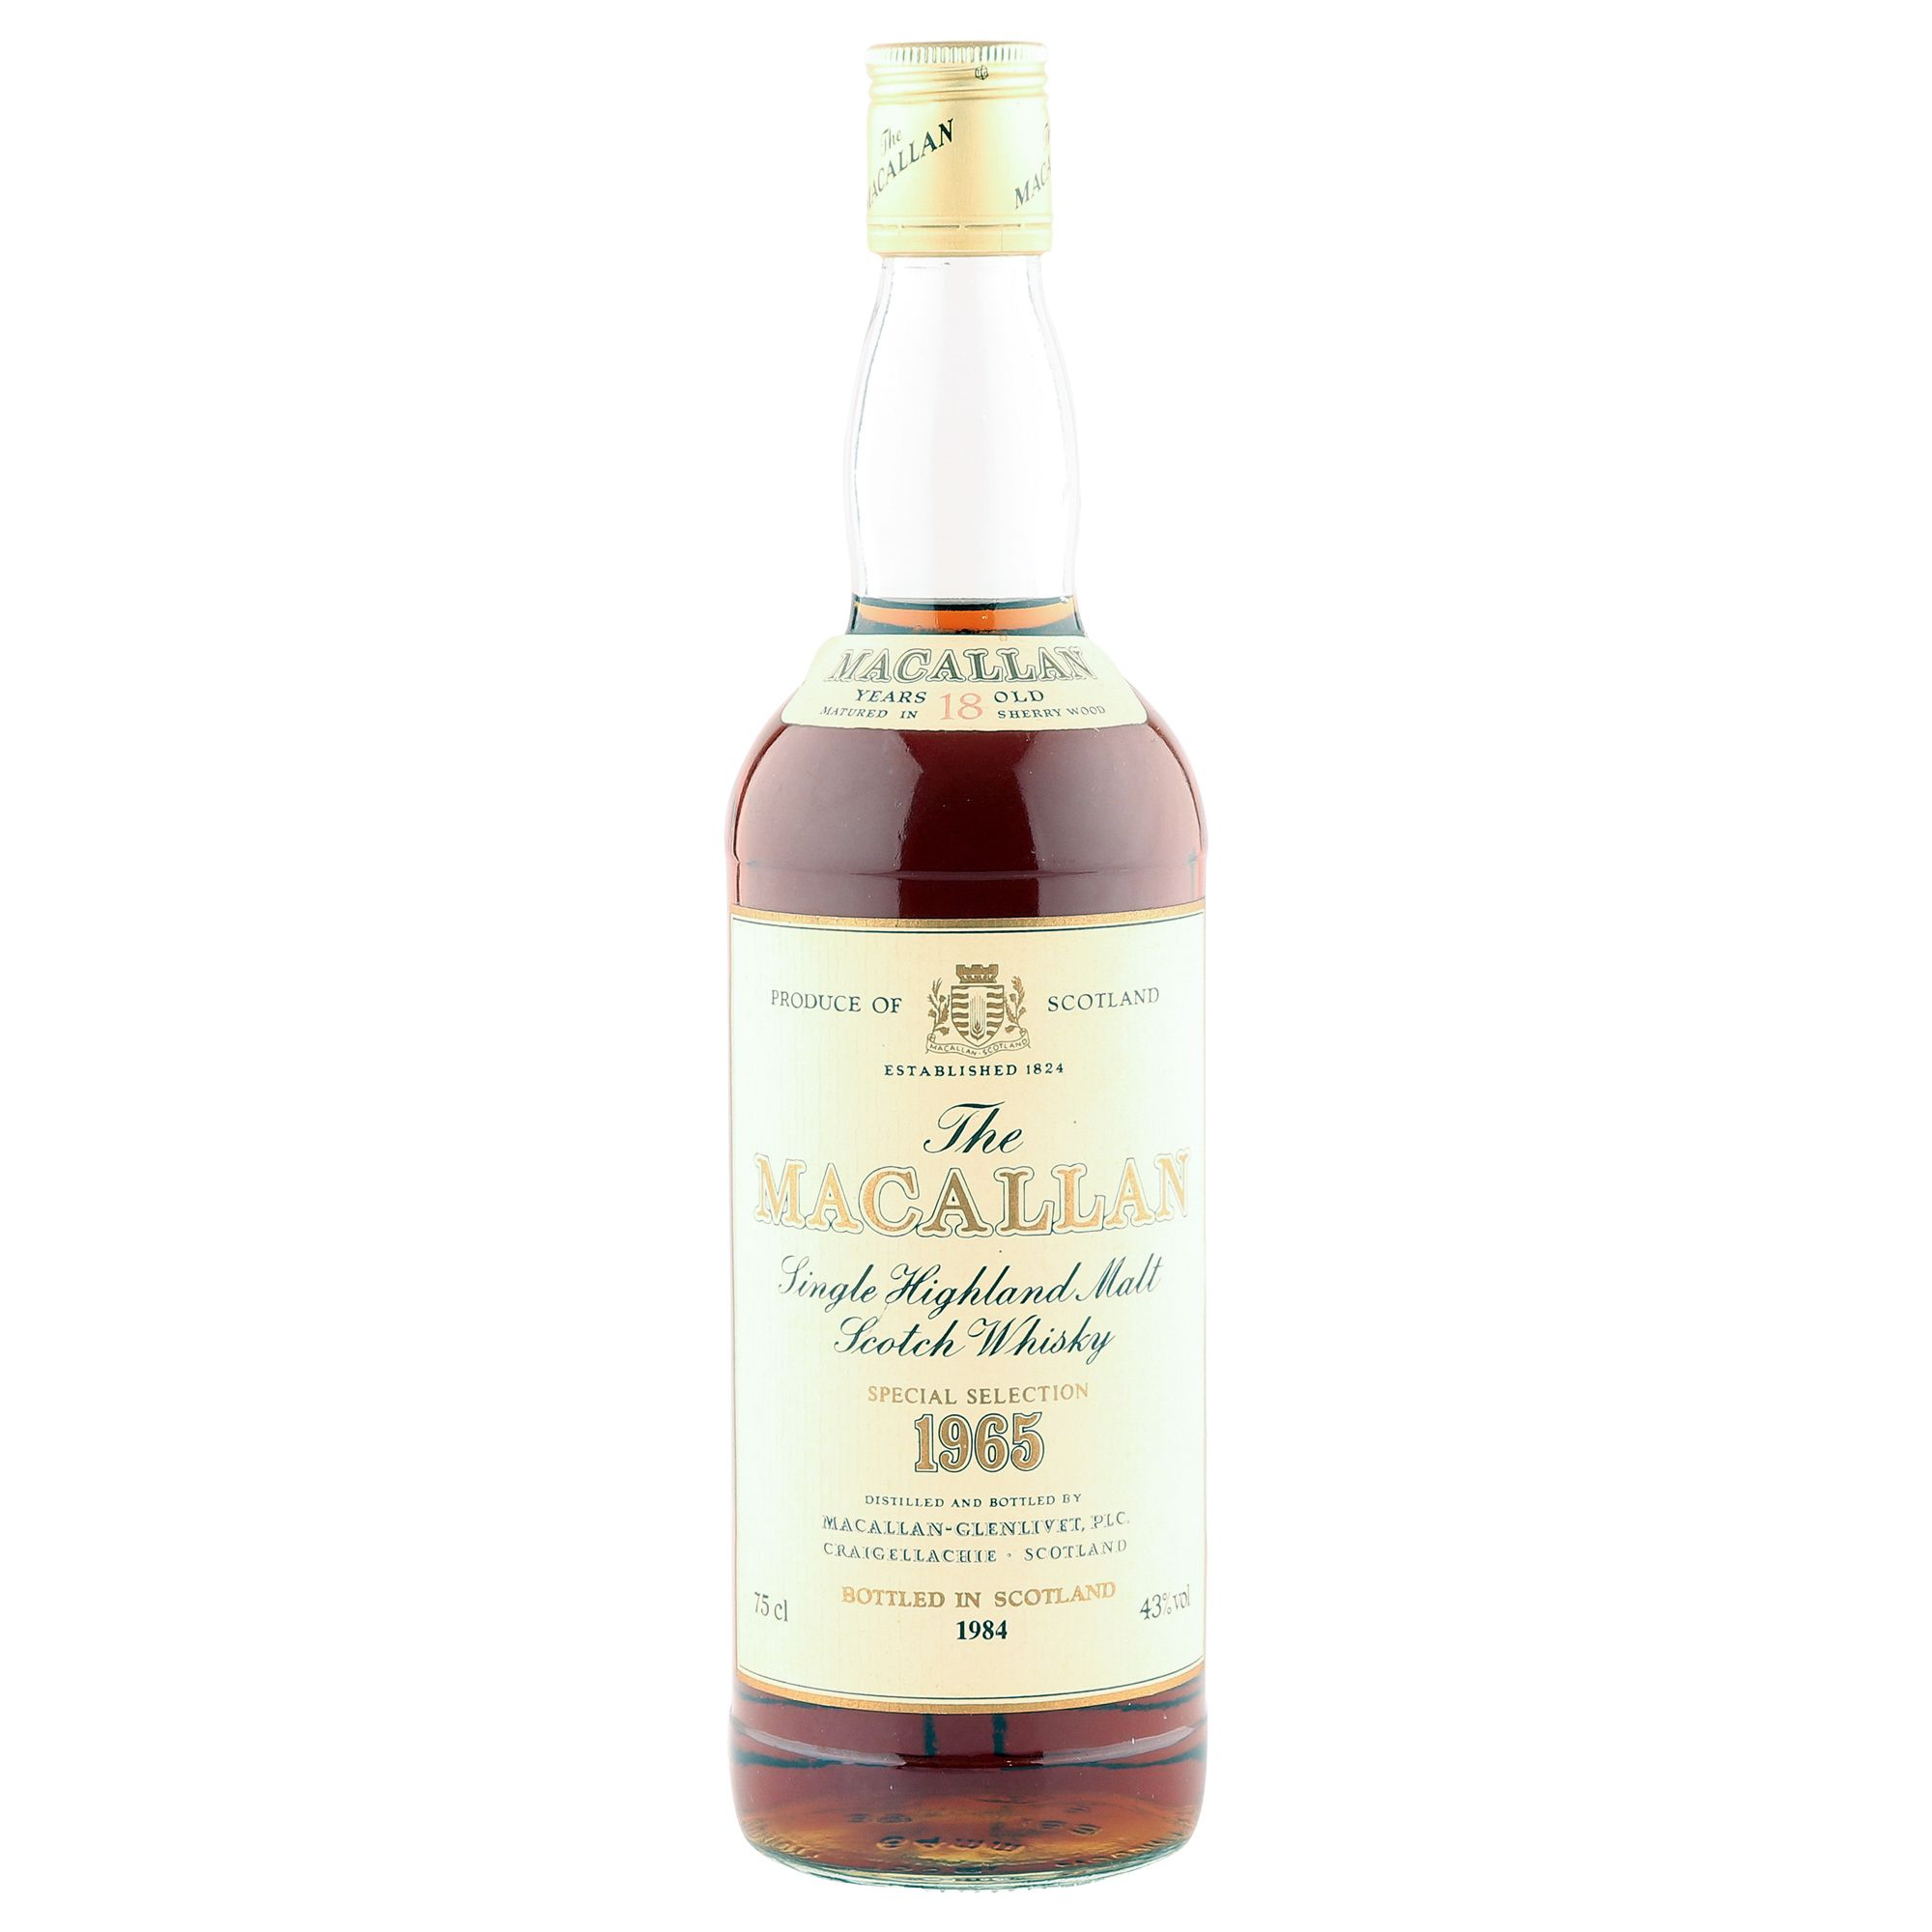 Macallan 1965 18 Year Old, Vintage UK Bottling